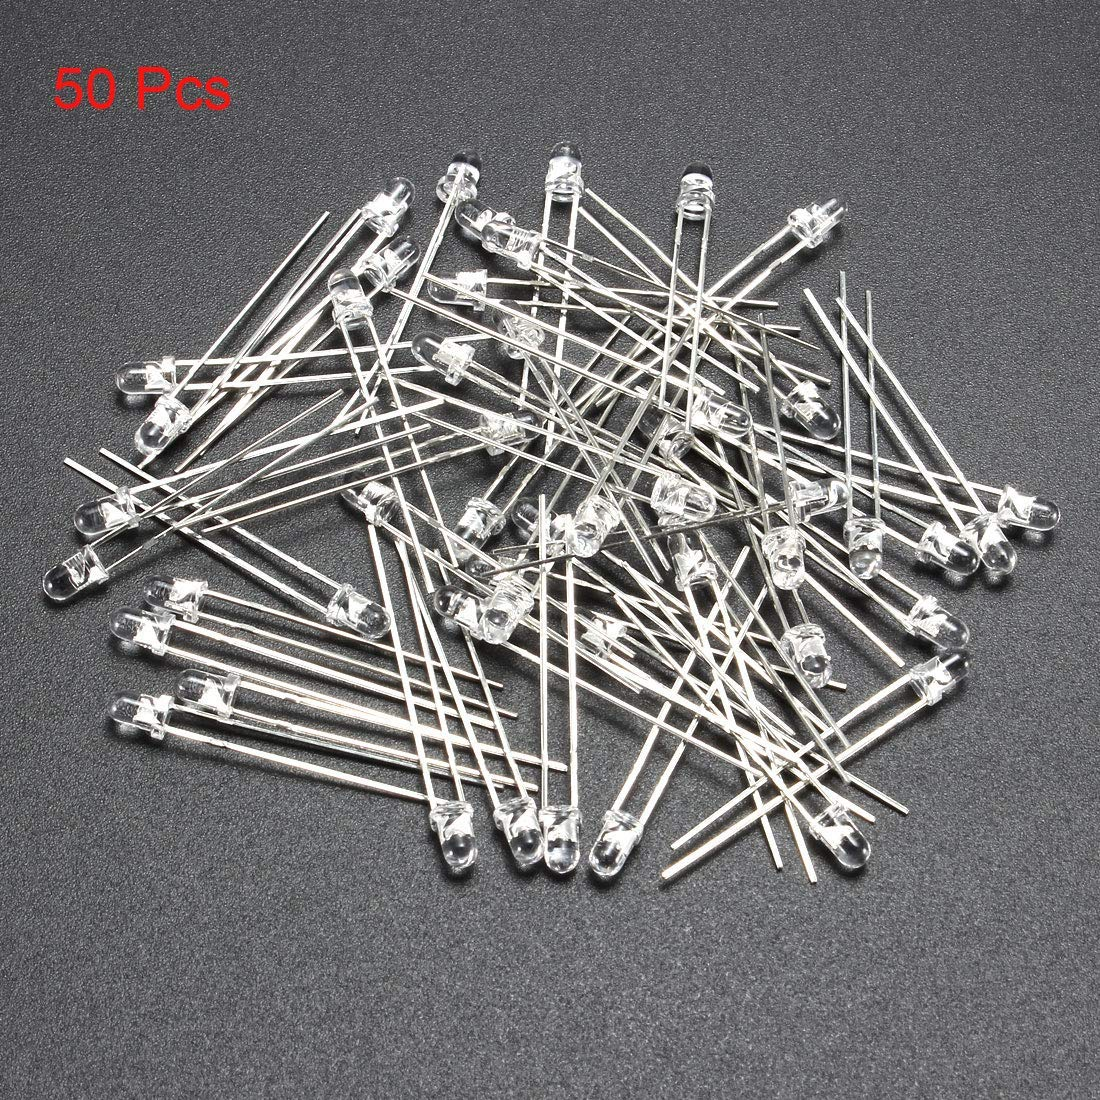 50pcs 3mm 940nm Infrared Emitting diode DC 1.2V LED IR emitter Light Emitting diodes Clear Round Head for Arduino